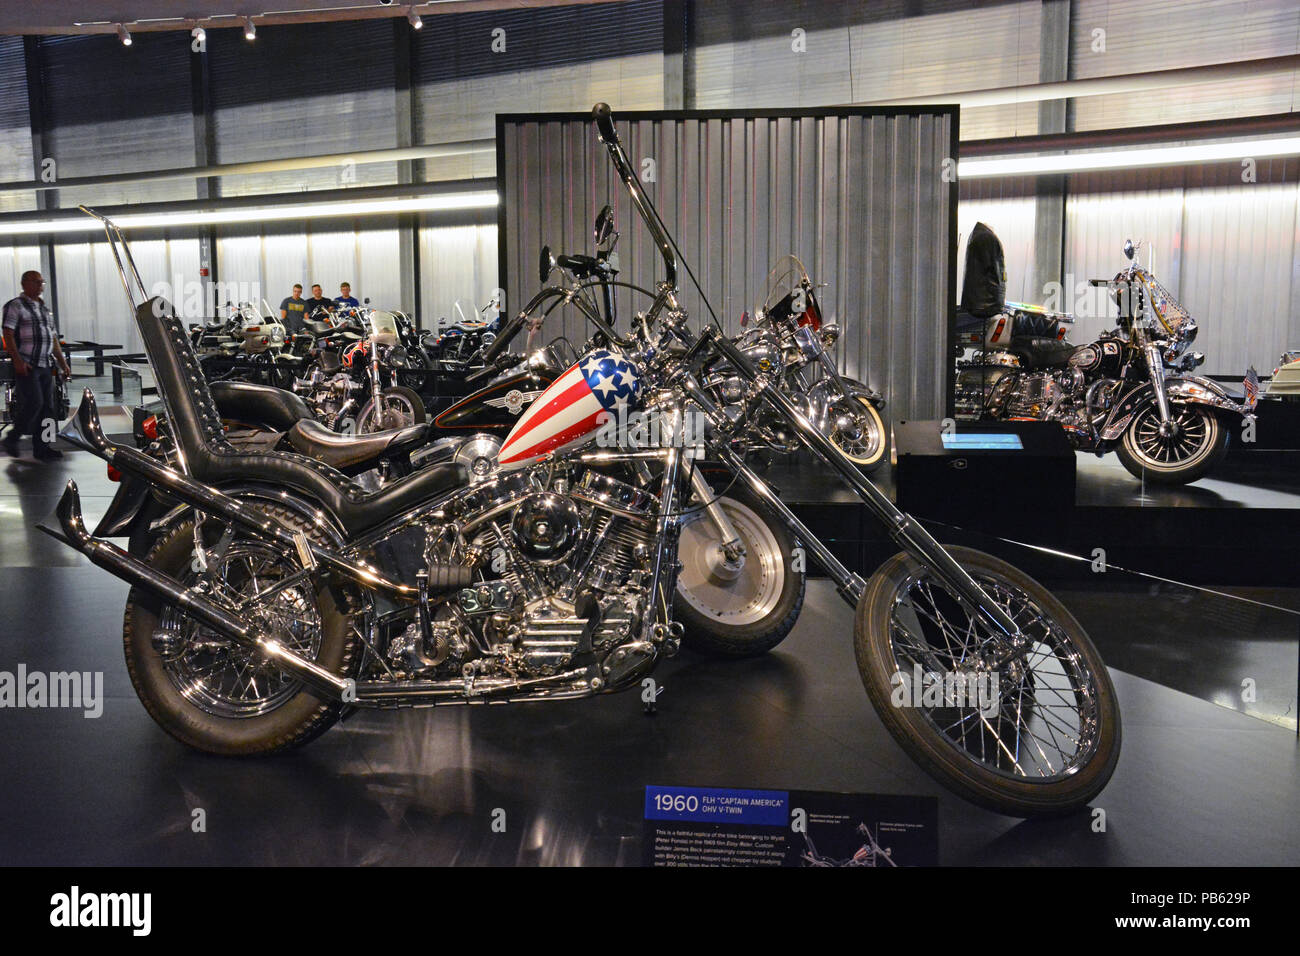 A reproduction of the iconic Easy Rider chopper on display at the Harley Davidson Motorcycle Museum in Milwaukee. - Stock Image